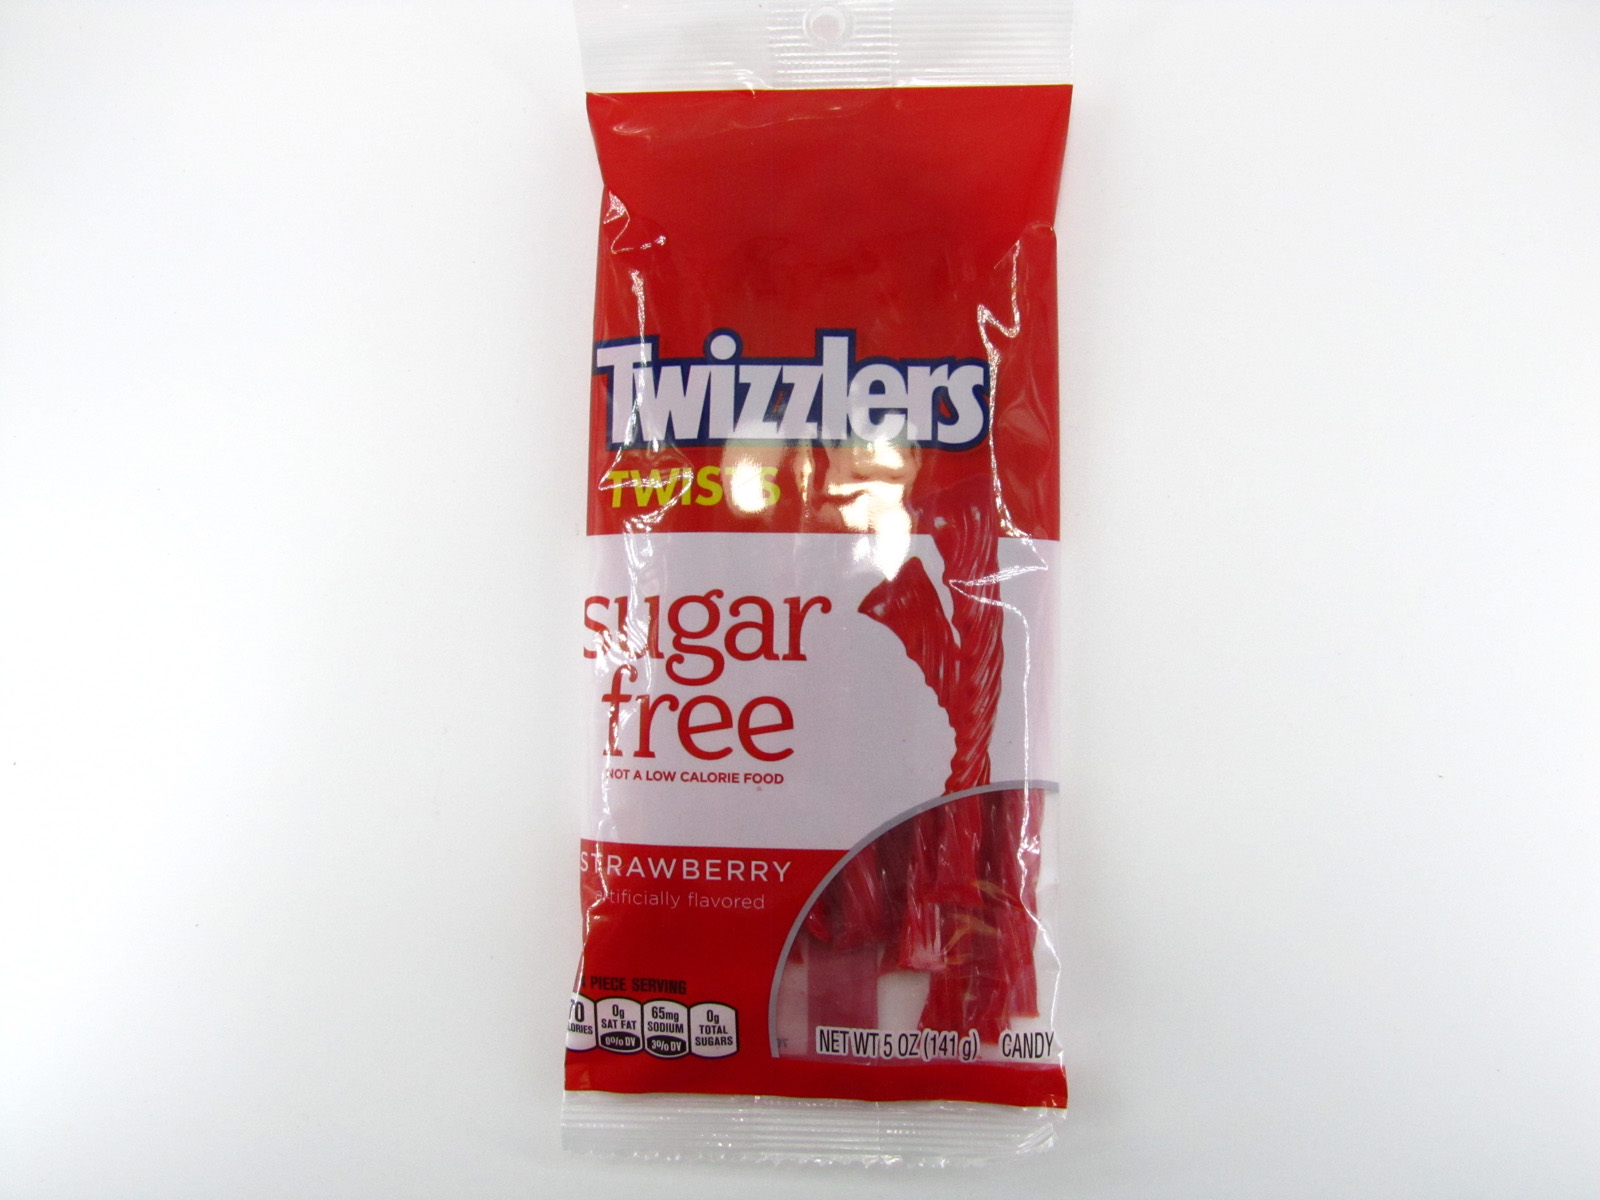 Twizzlers Sugar Free - front view